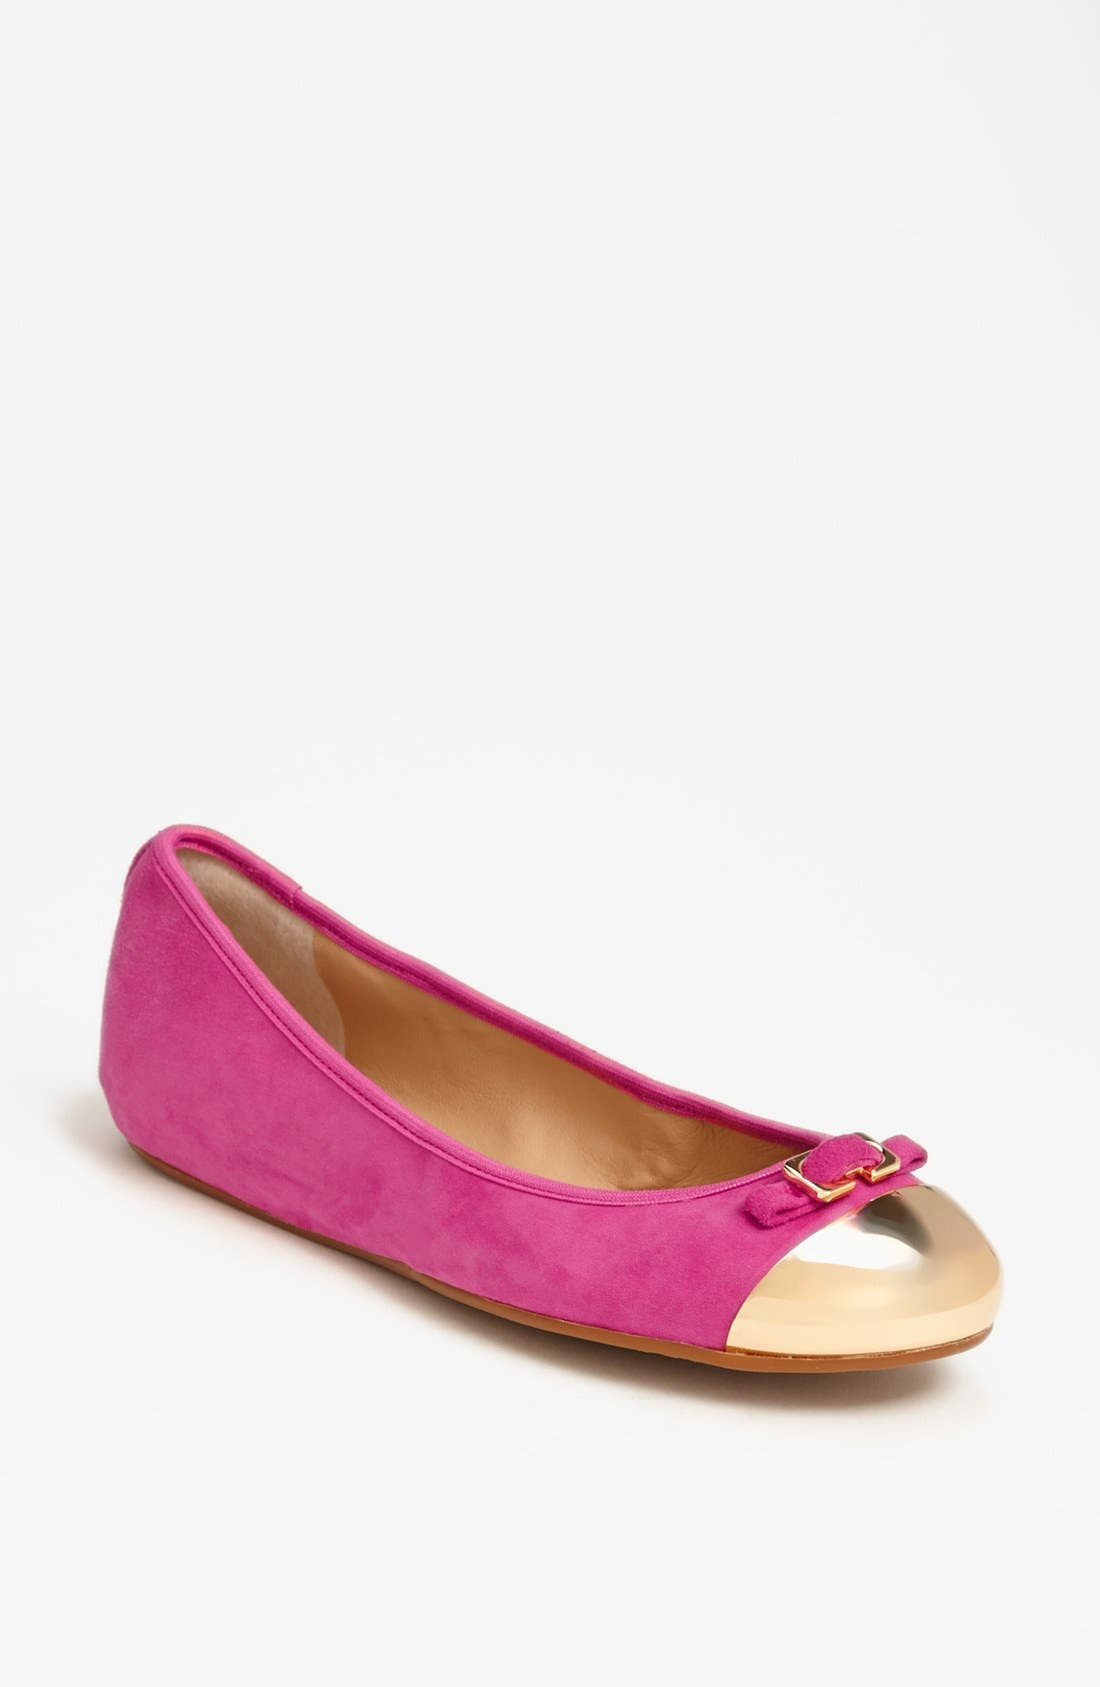 Alternate Image 1 Selected - Diane von Furstenberg 'Bonita' Suede Flat (Online Only)